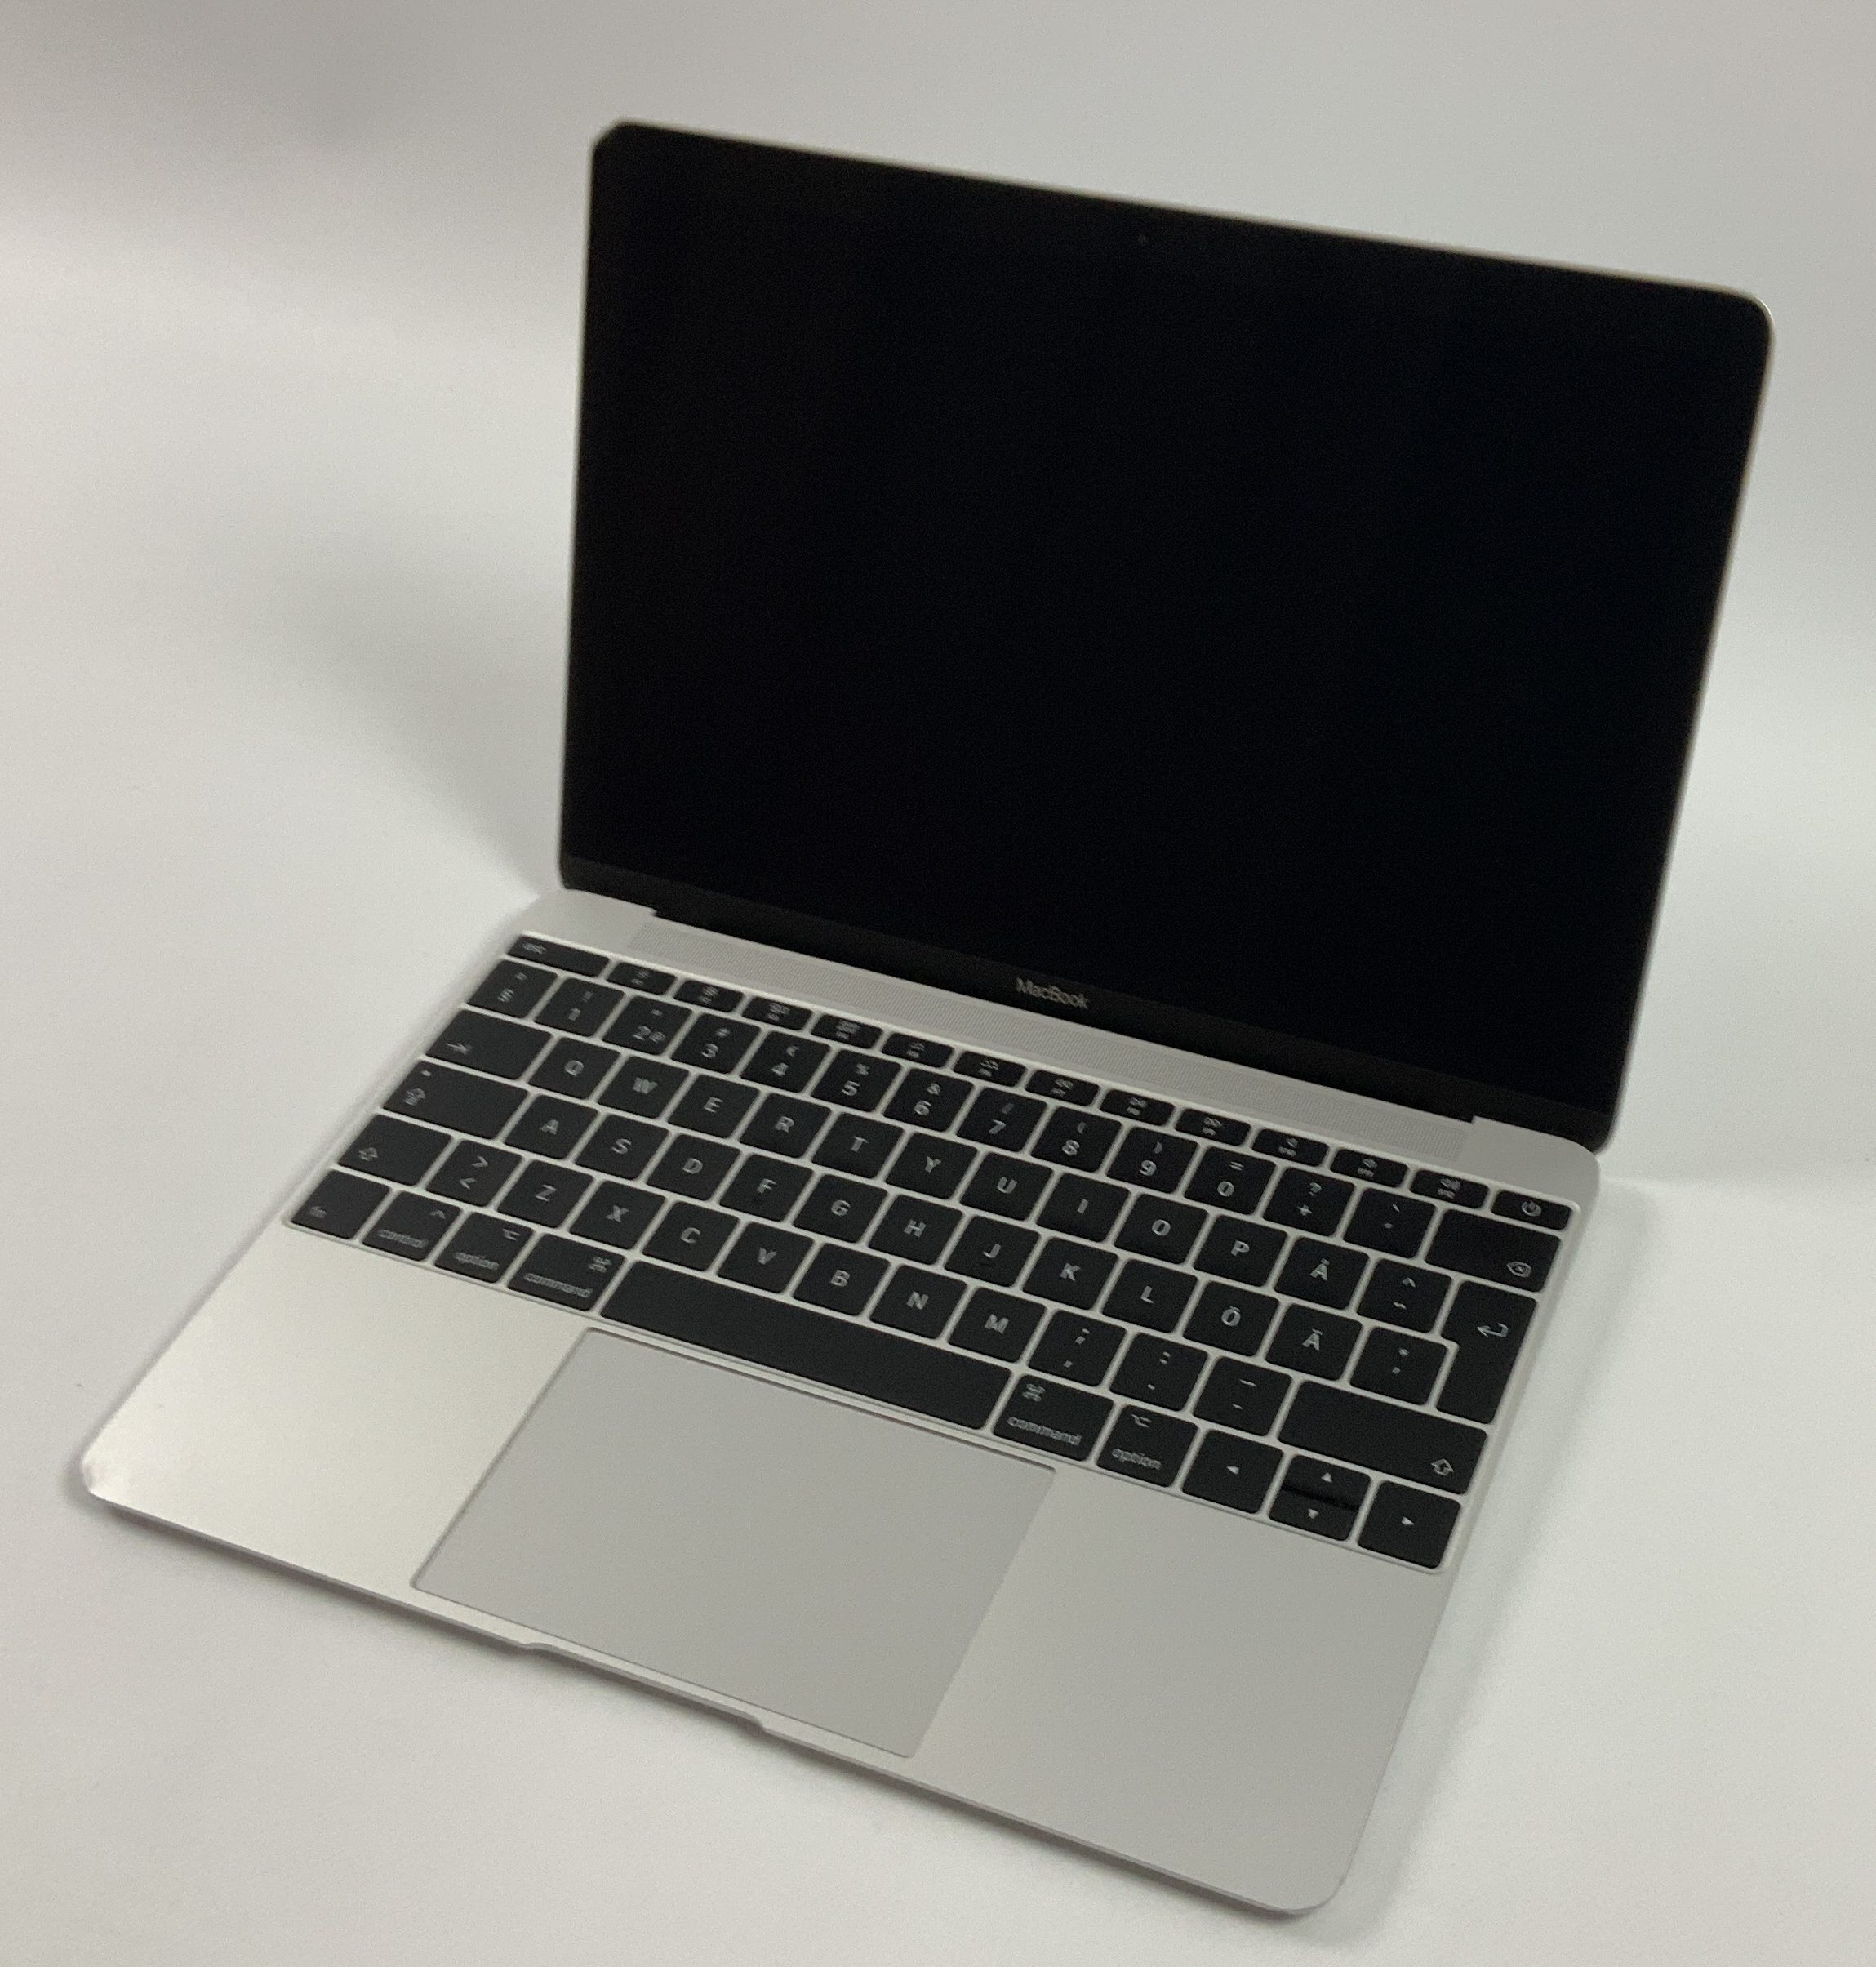 "MacBook 12"" Mid 2017 (Intel Core i5 1.3 GHz 8 GB RAM 512 GB SSD), Silver, Intel Core i5 1.3 GHz, 8 GB RAM, 512 GB SSD, Bild 1"